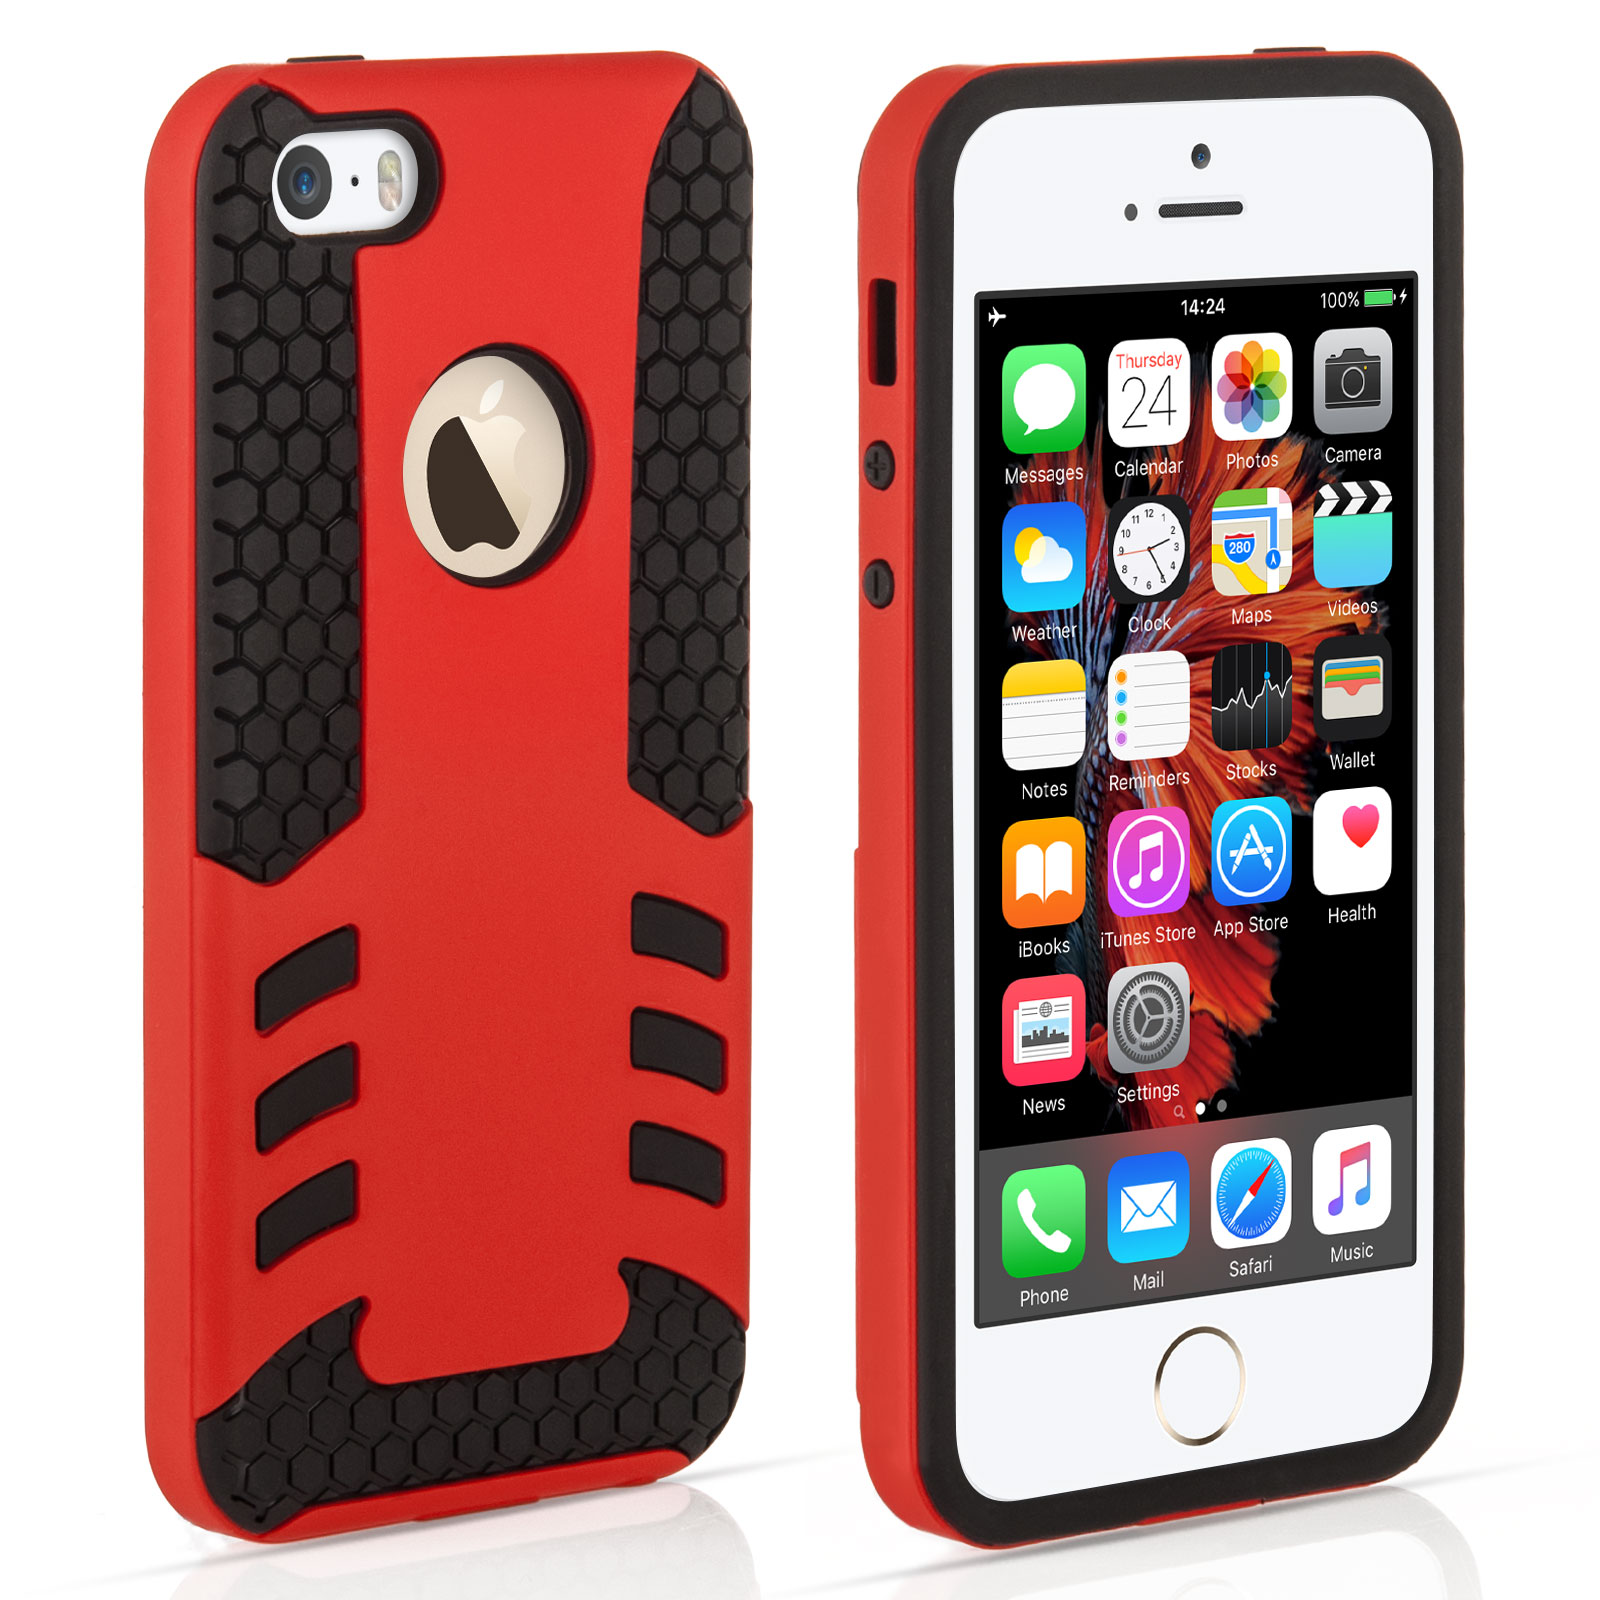 YouSave iPhone 5 / 5S / SE Border Combo Case - Red